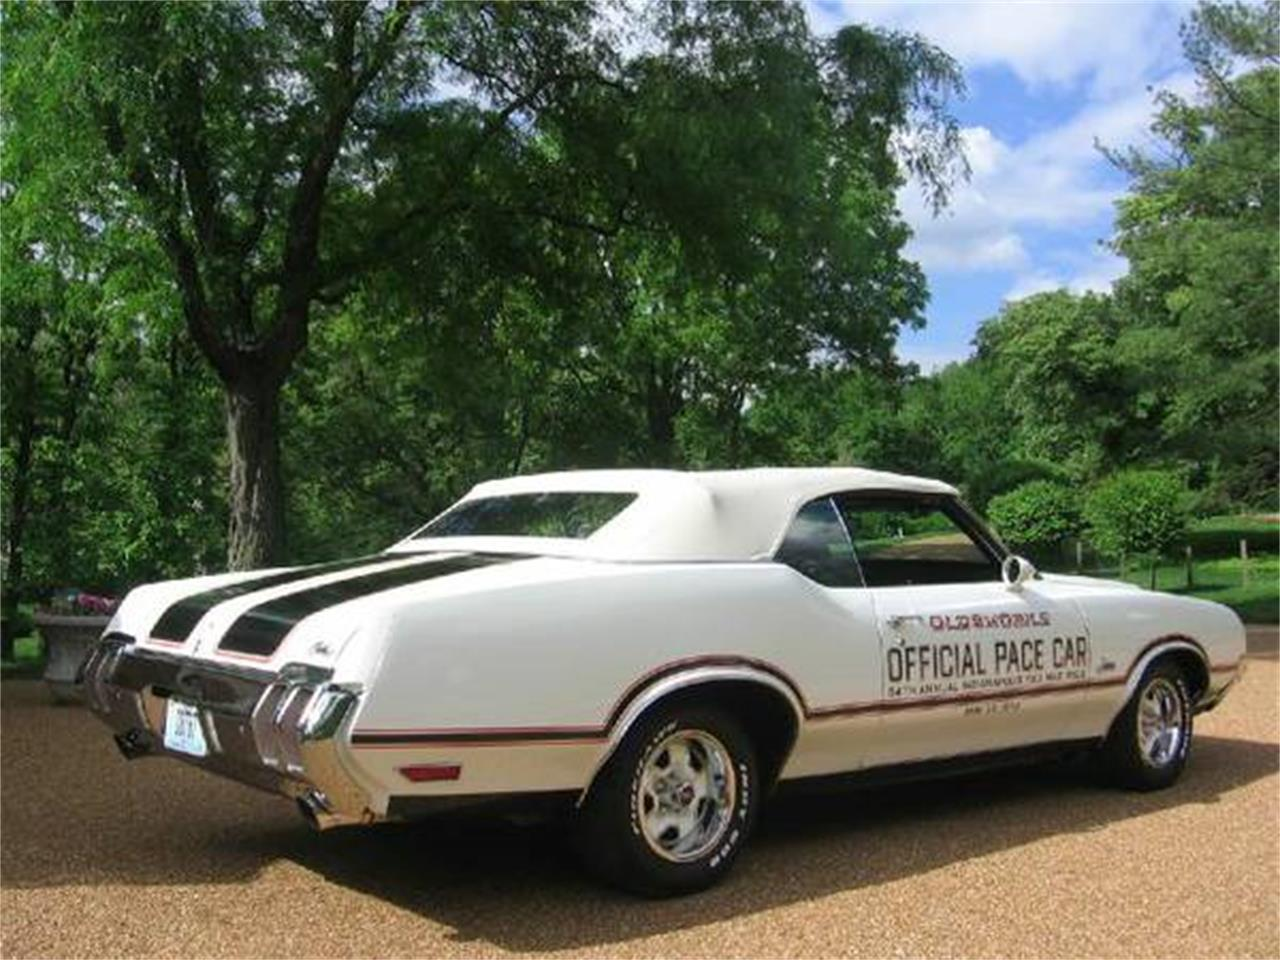 Large Picture of '70 Cutlass Supreme located in Missouri - $46,500.00 Offered by a Private Seller - E0YT